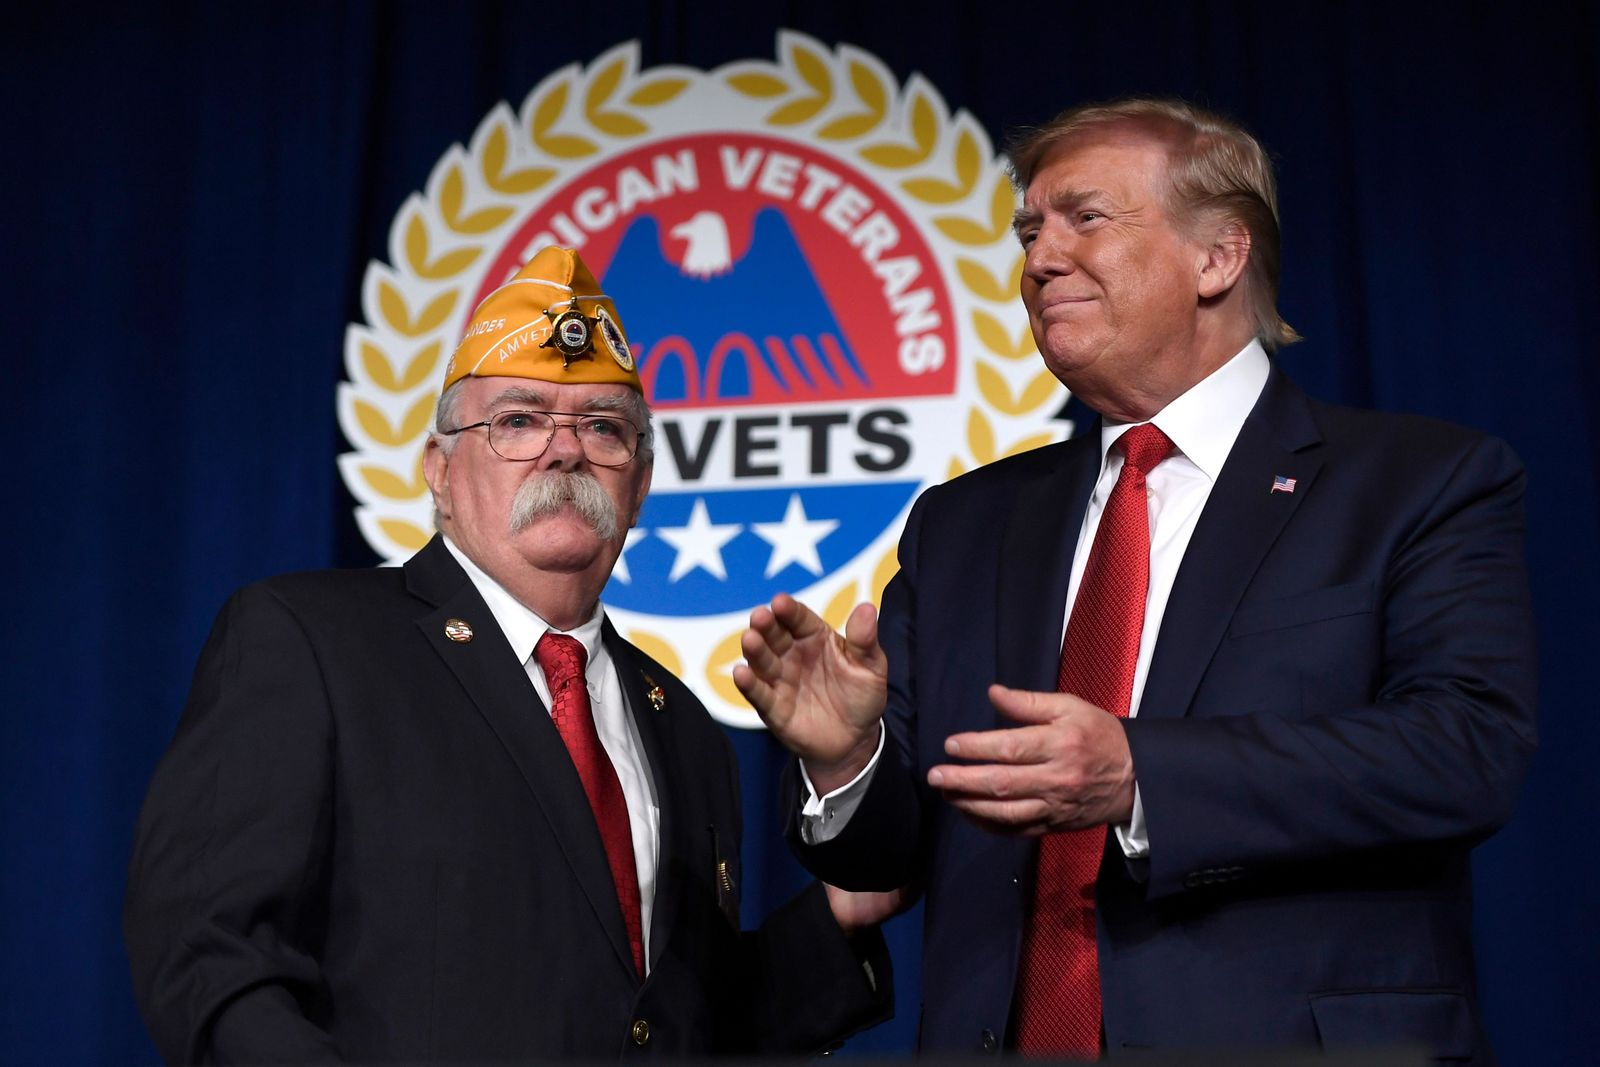 President Donald Trump stands with AMVETS national commander Rege Riley at the American Veterans (AMVETS) 75th National Convention in Louisville, Ky., Wednesday, Aug. 21, 2019. (AP Photo/Susan Walsh)